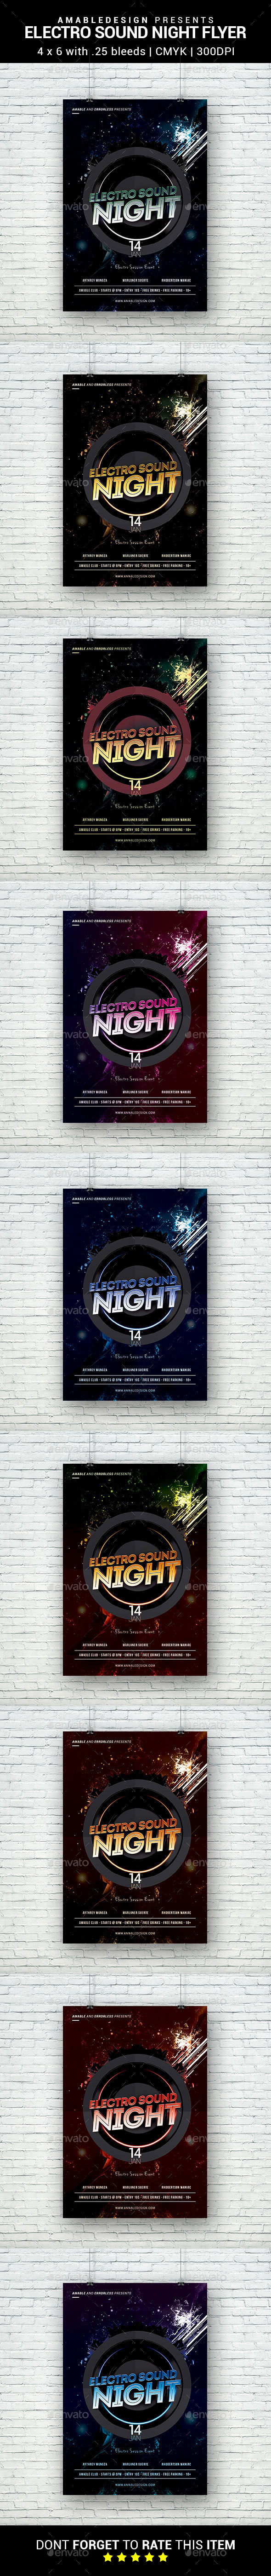 Electro Sound Night Flyer - Clubs & Parties Events